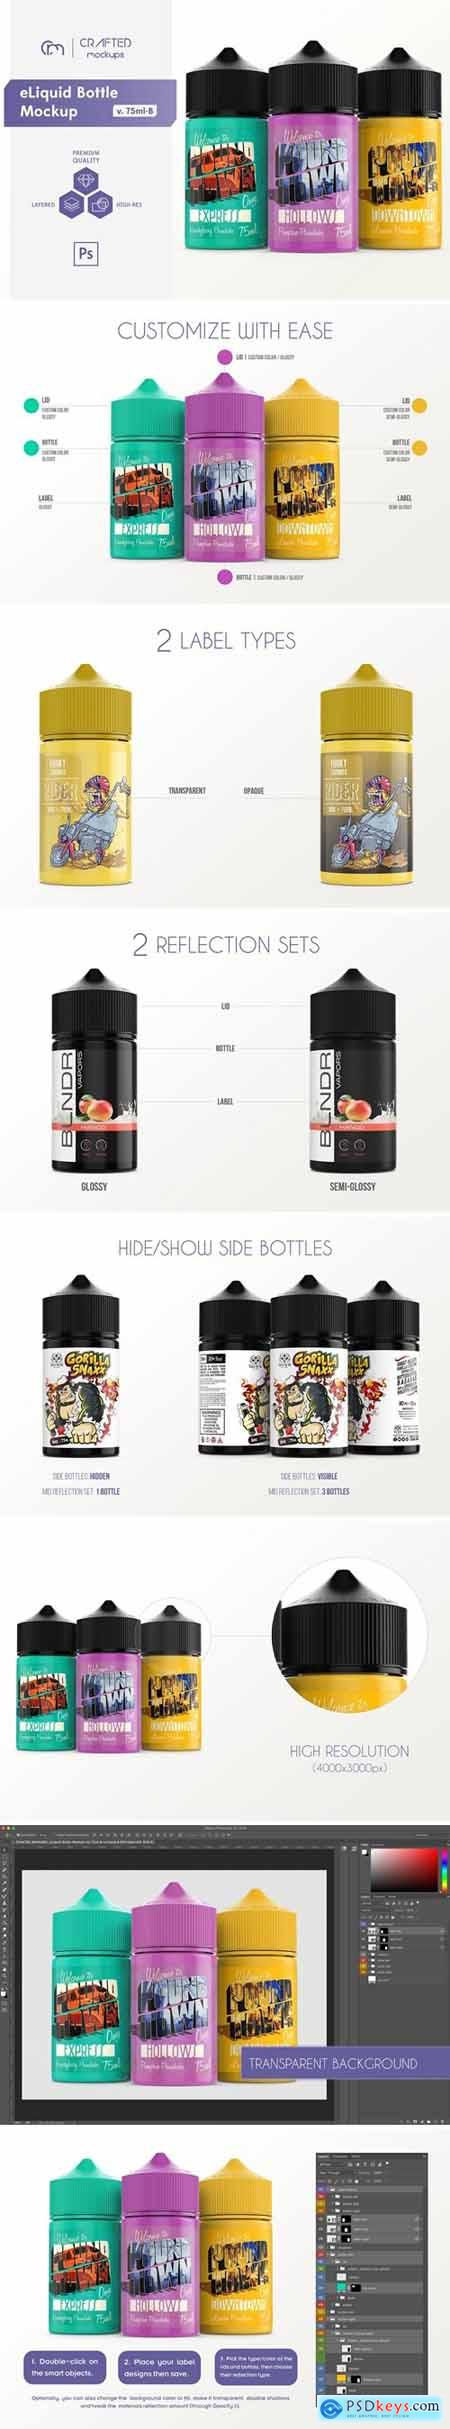 eLiquid Bottle Mockup v. 75ml-B 4088547